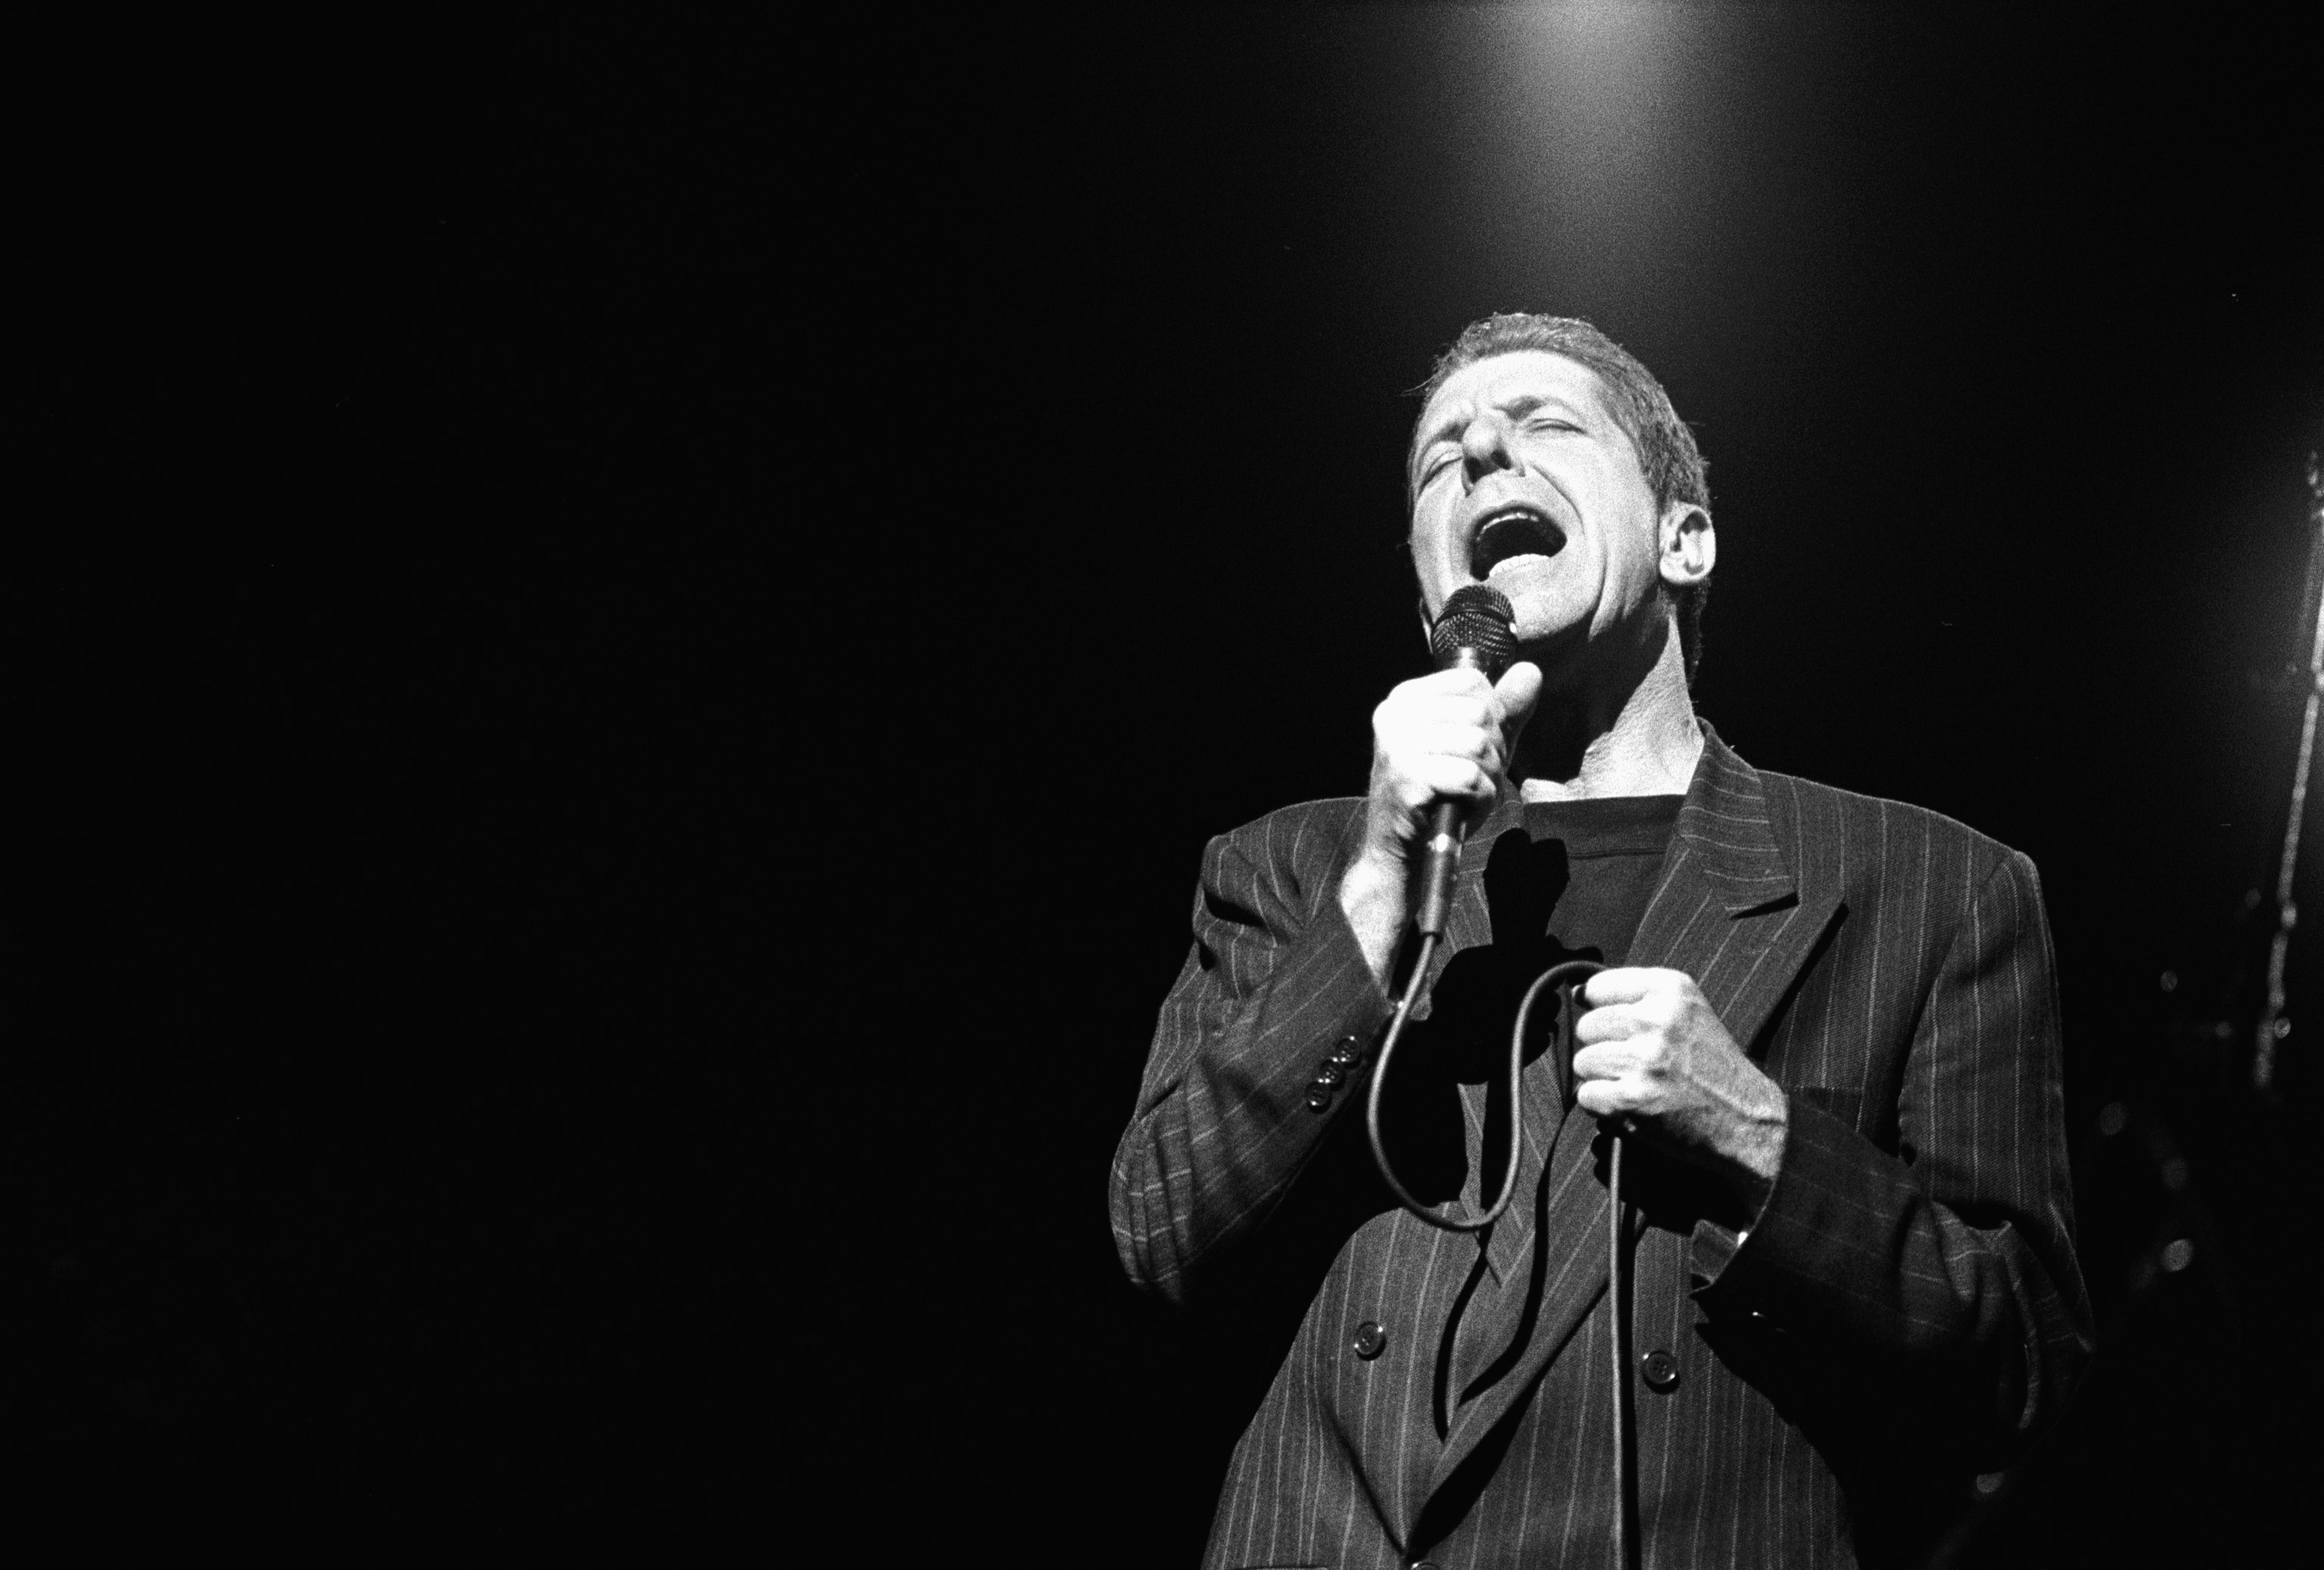 Leonard Cohen performs at Het Muziektheater in Amsterdam, Netherlands on April 18, 1988.